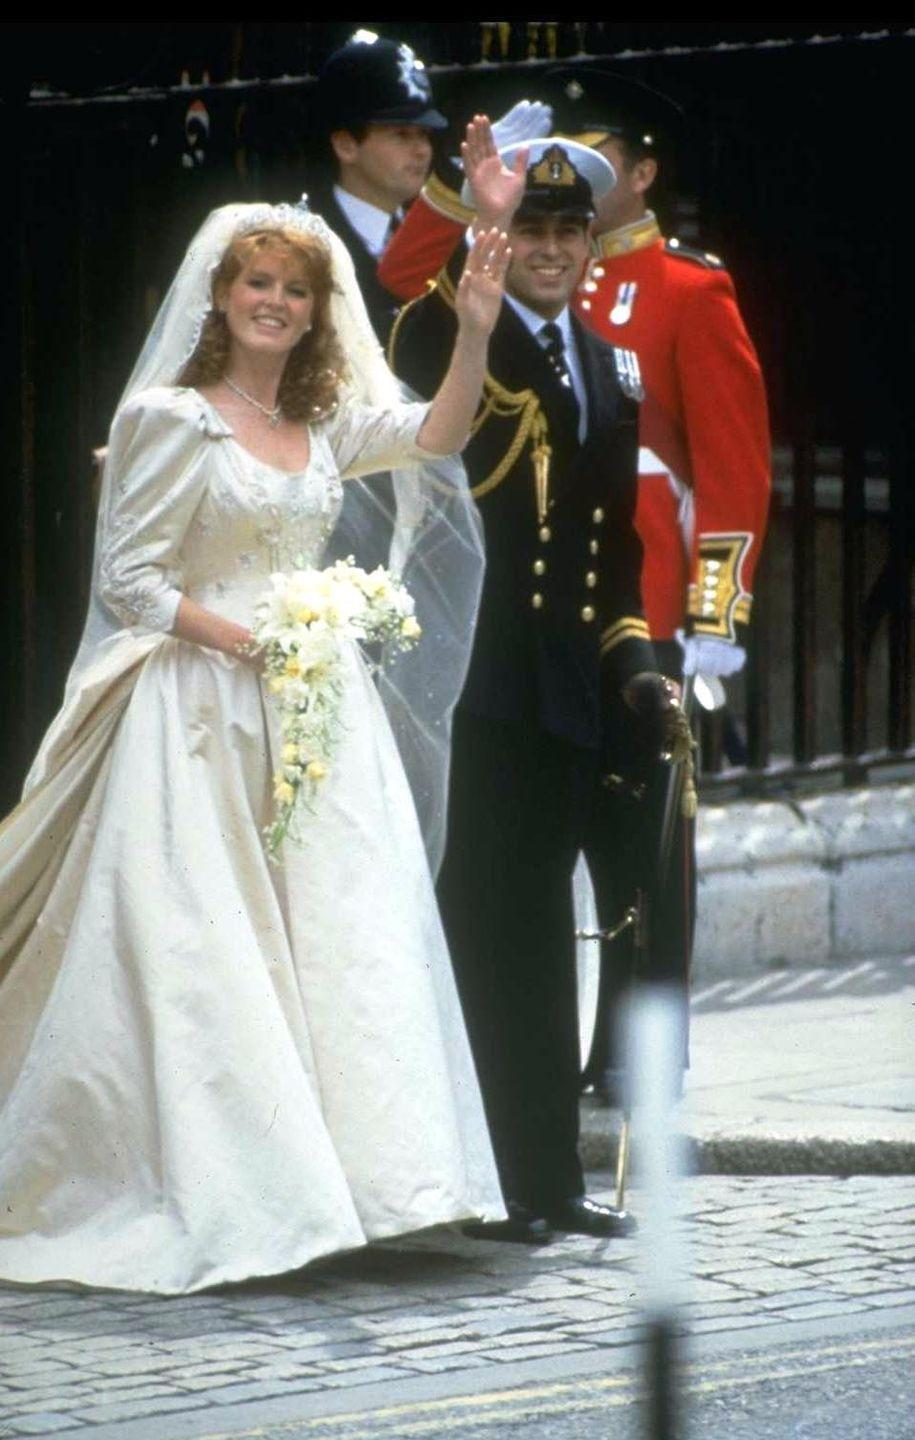 "<p><a href=""https://www.townandcountrymag.com/society/tradition/g11664546/scandalous-royal-romances/"" rel=""nofollow noopener"" target=""_blank"" data-ylk=""slk:Duchess of York Sarah Ferguson married Prince Andrew"" class=""link rapid-noclick-resp"">Duchess of York Sarah Ferguson married Prince Andrew</a> on July 23, 1986 at Westminster Abbey. Ferguson's wedding dress, designed by <span class=""redactor-unlink"">Lindka Cierach,</span> featured heavy beadwork, depicting symbols that were personally significant to the couple—including hearts, anchors, thistles, and bumblebees. </p>"